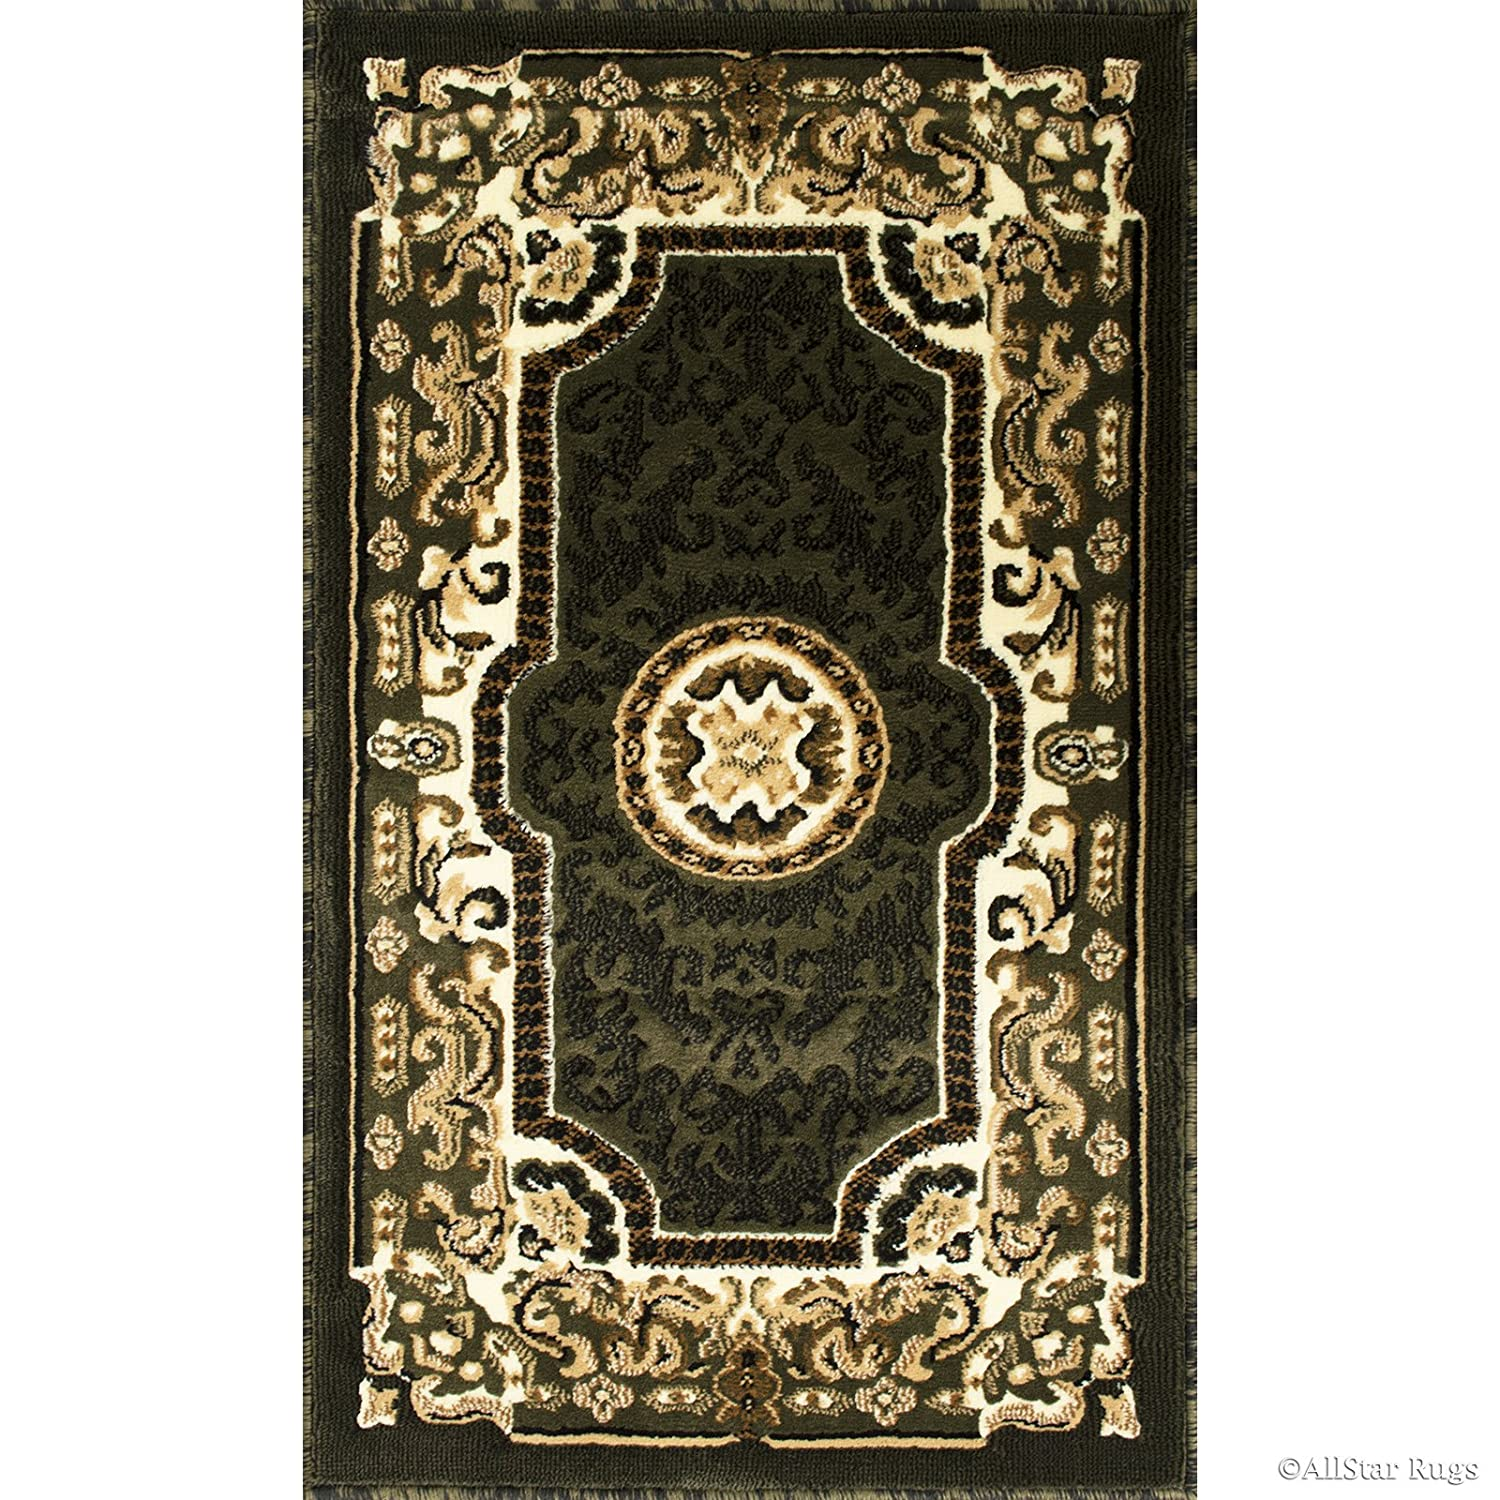 2 X 3 3 Allstar 2 X 3 Sage Green Doormat Accent Area Rug Woven High Density Drop-Stitch Carving